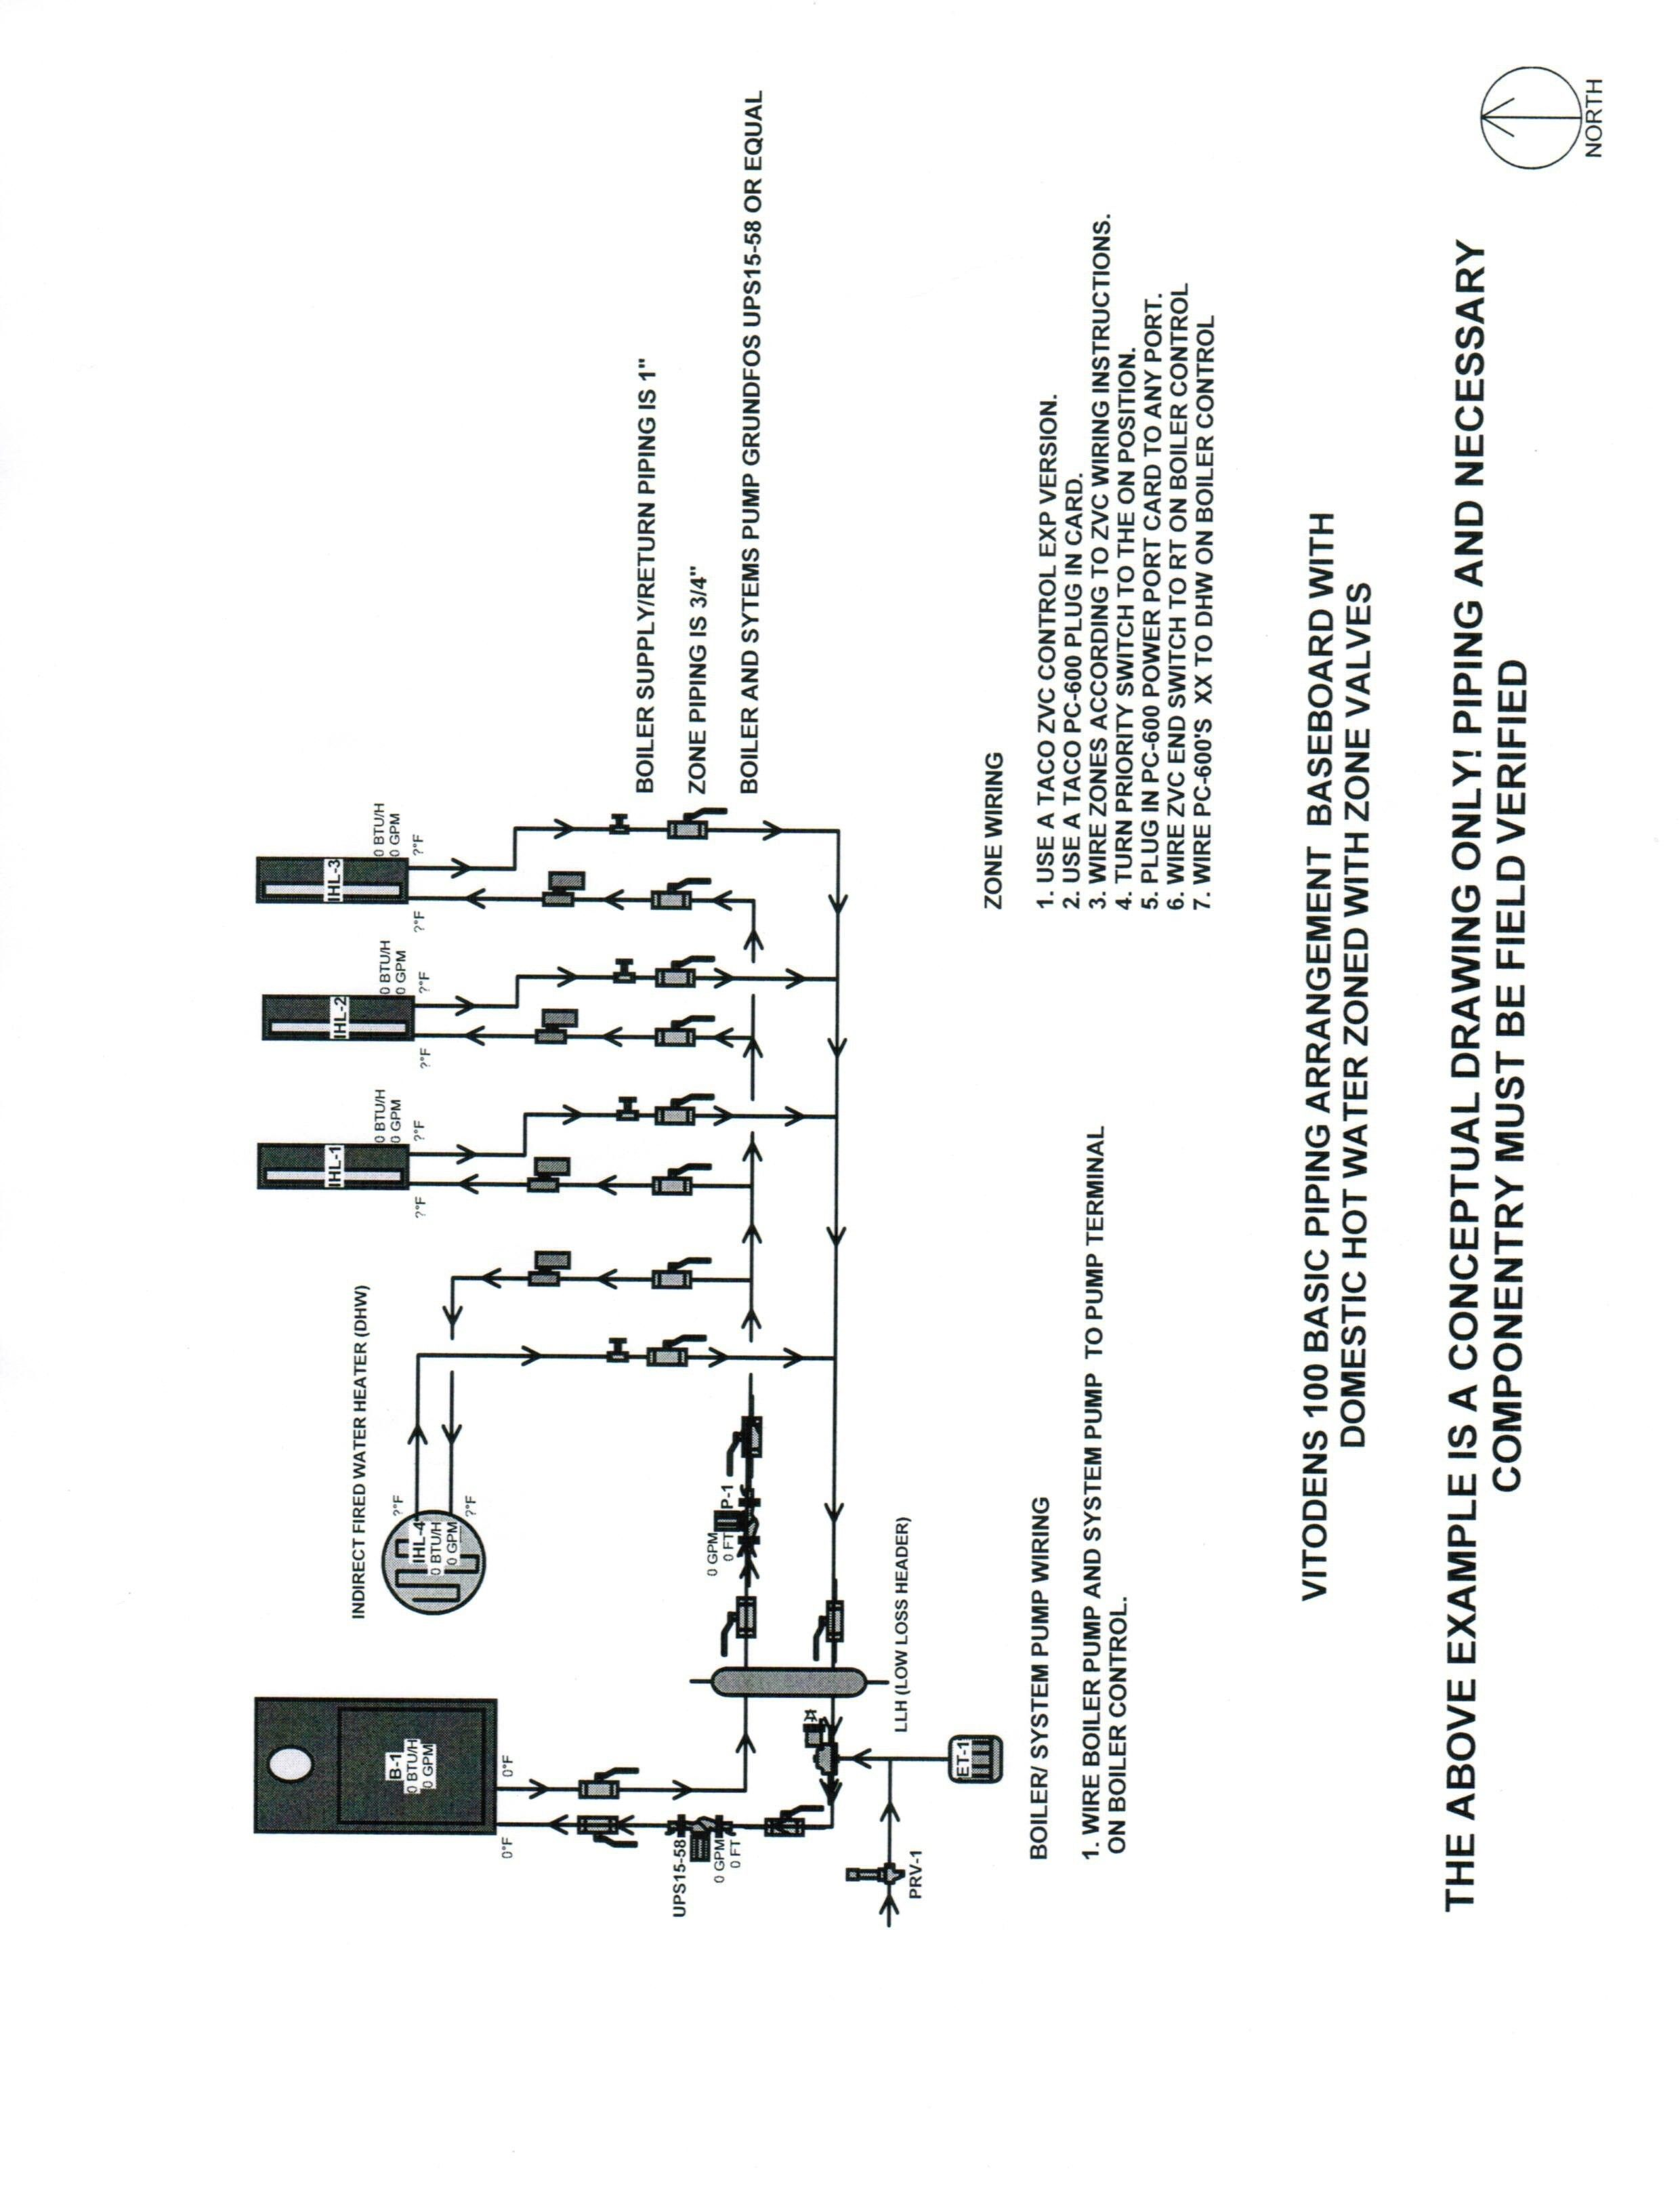 7 Wire Honeywell Thermostat Wiring Diagram from i.pinimg.com